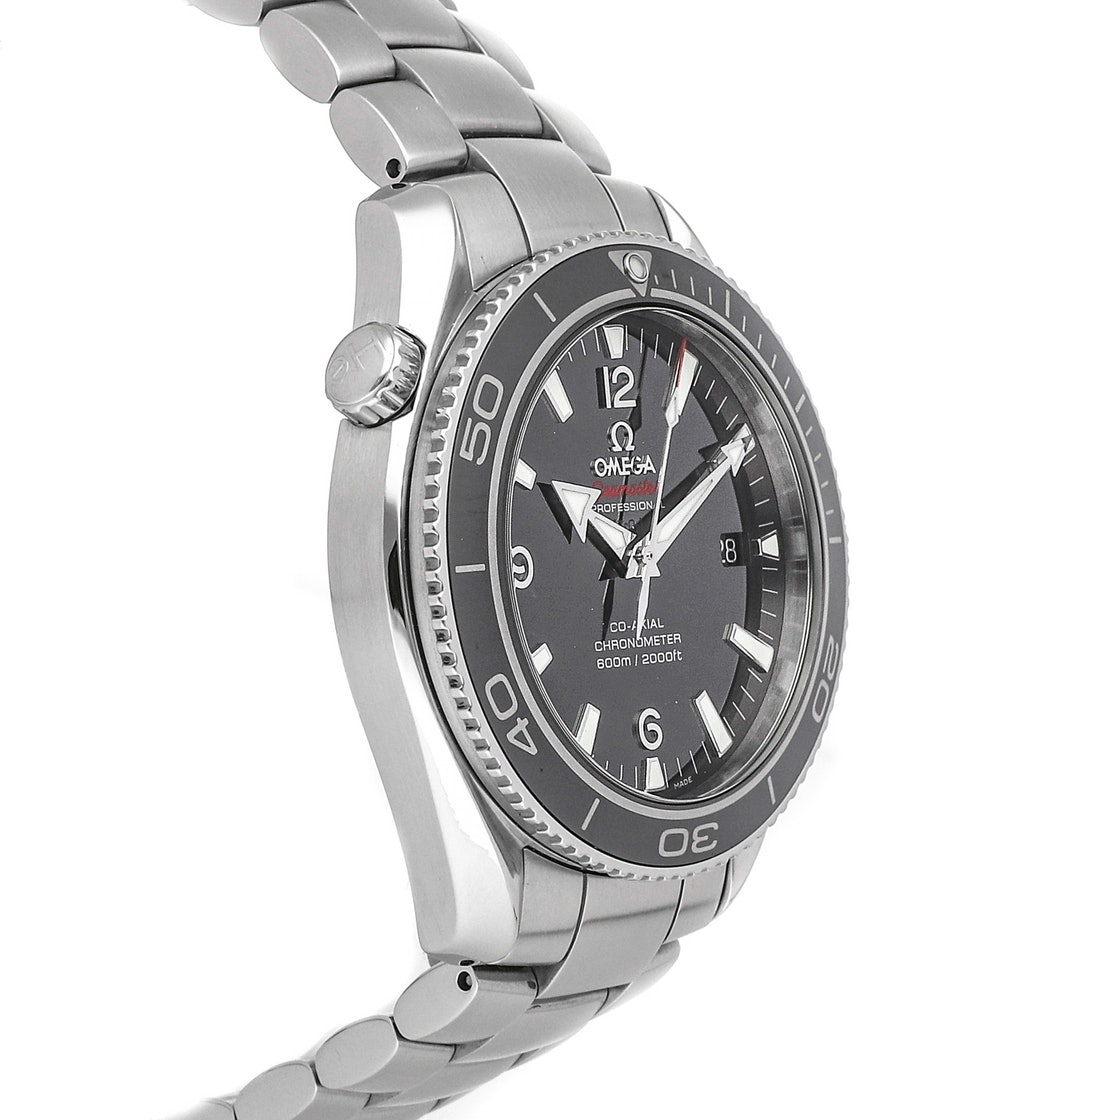 Omega Seamaster Planet Ocean 600m Limited Edition 222.30.42.20.01.001